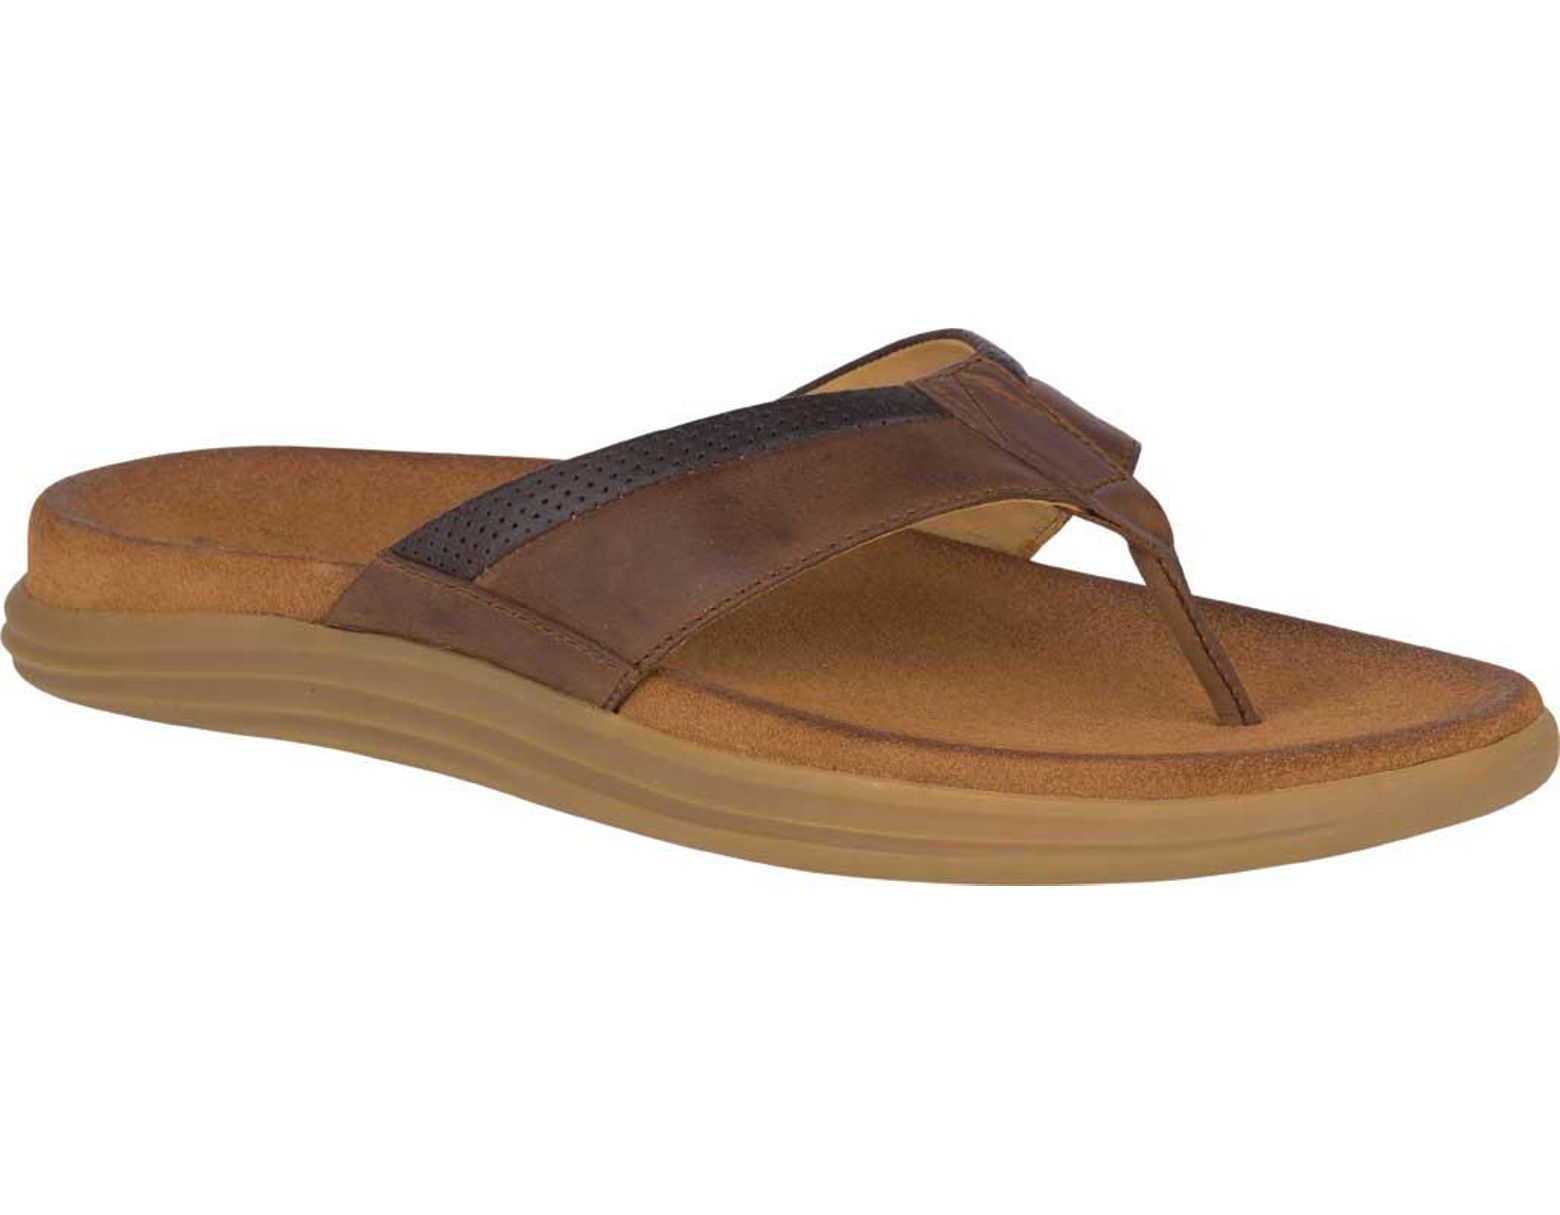 dd5fb352a76d Lyst - Sperry Top-Sider Women s Angelfish Boat Shoe in Brown for Men ...